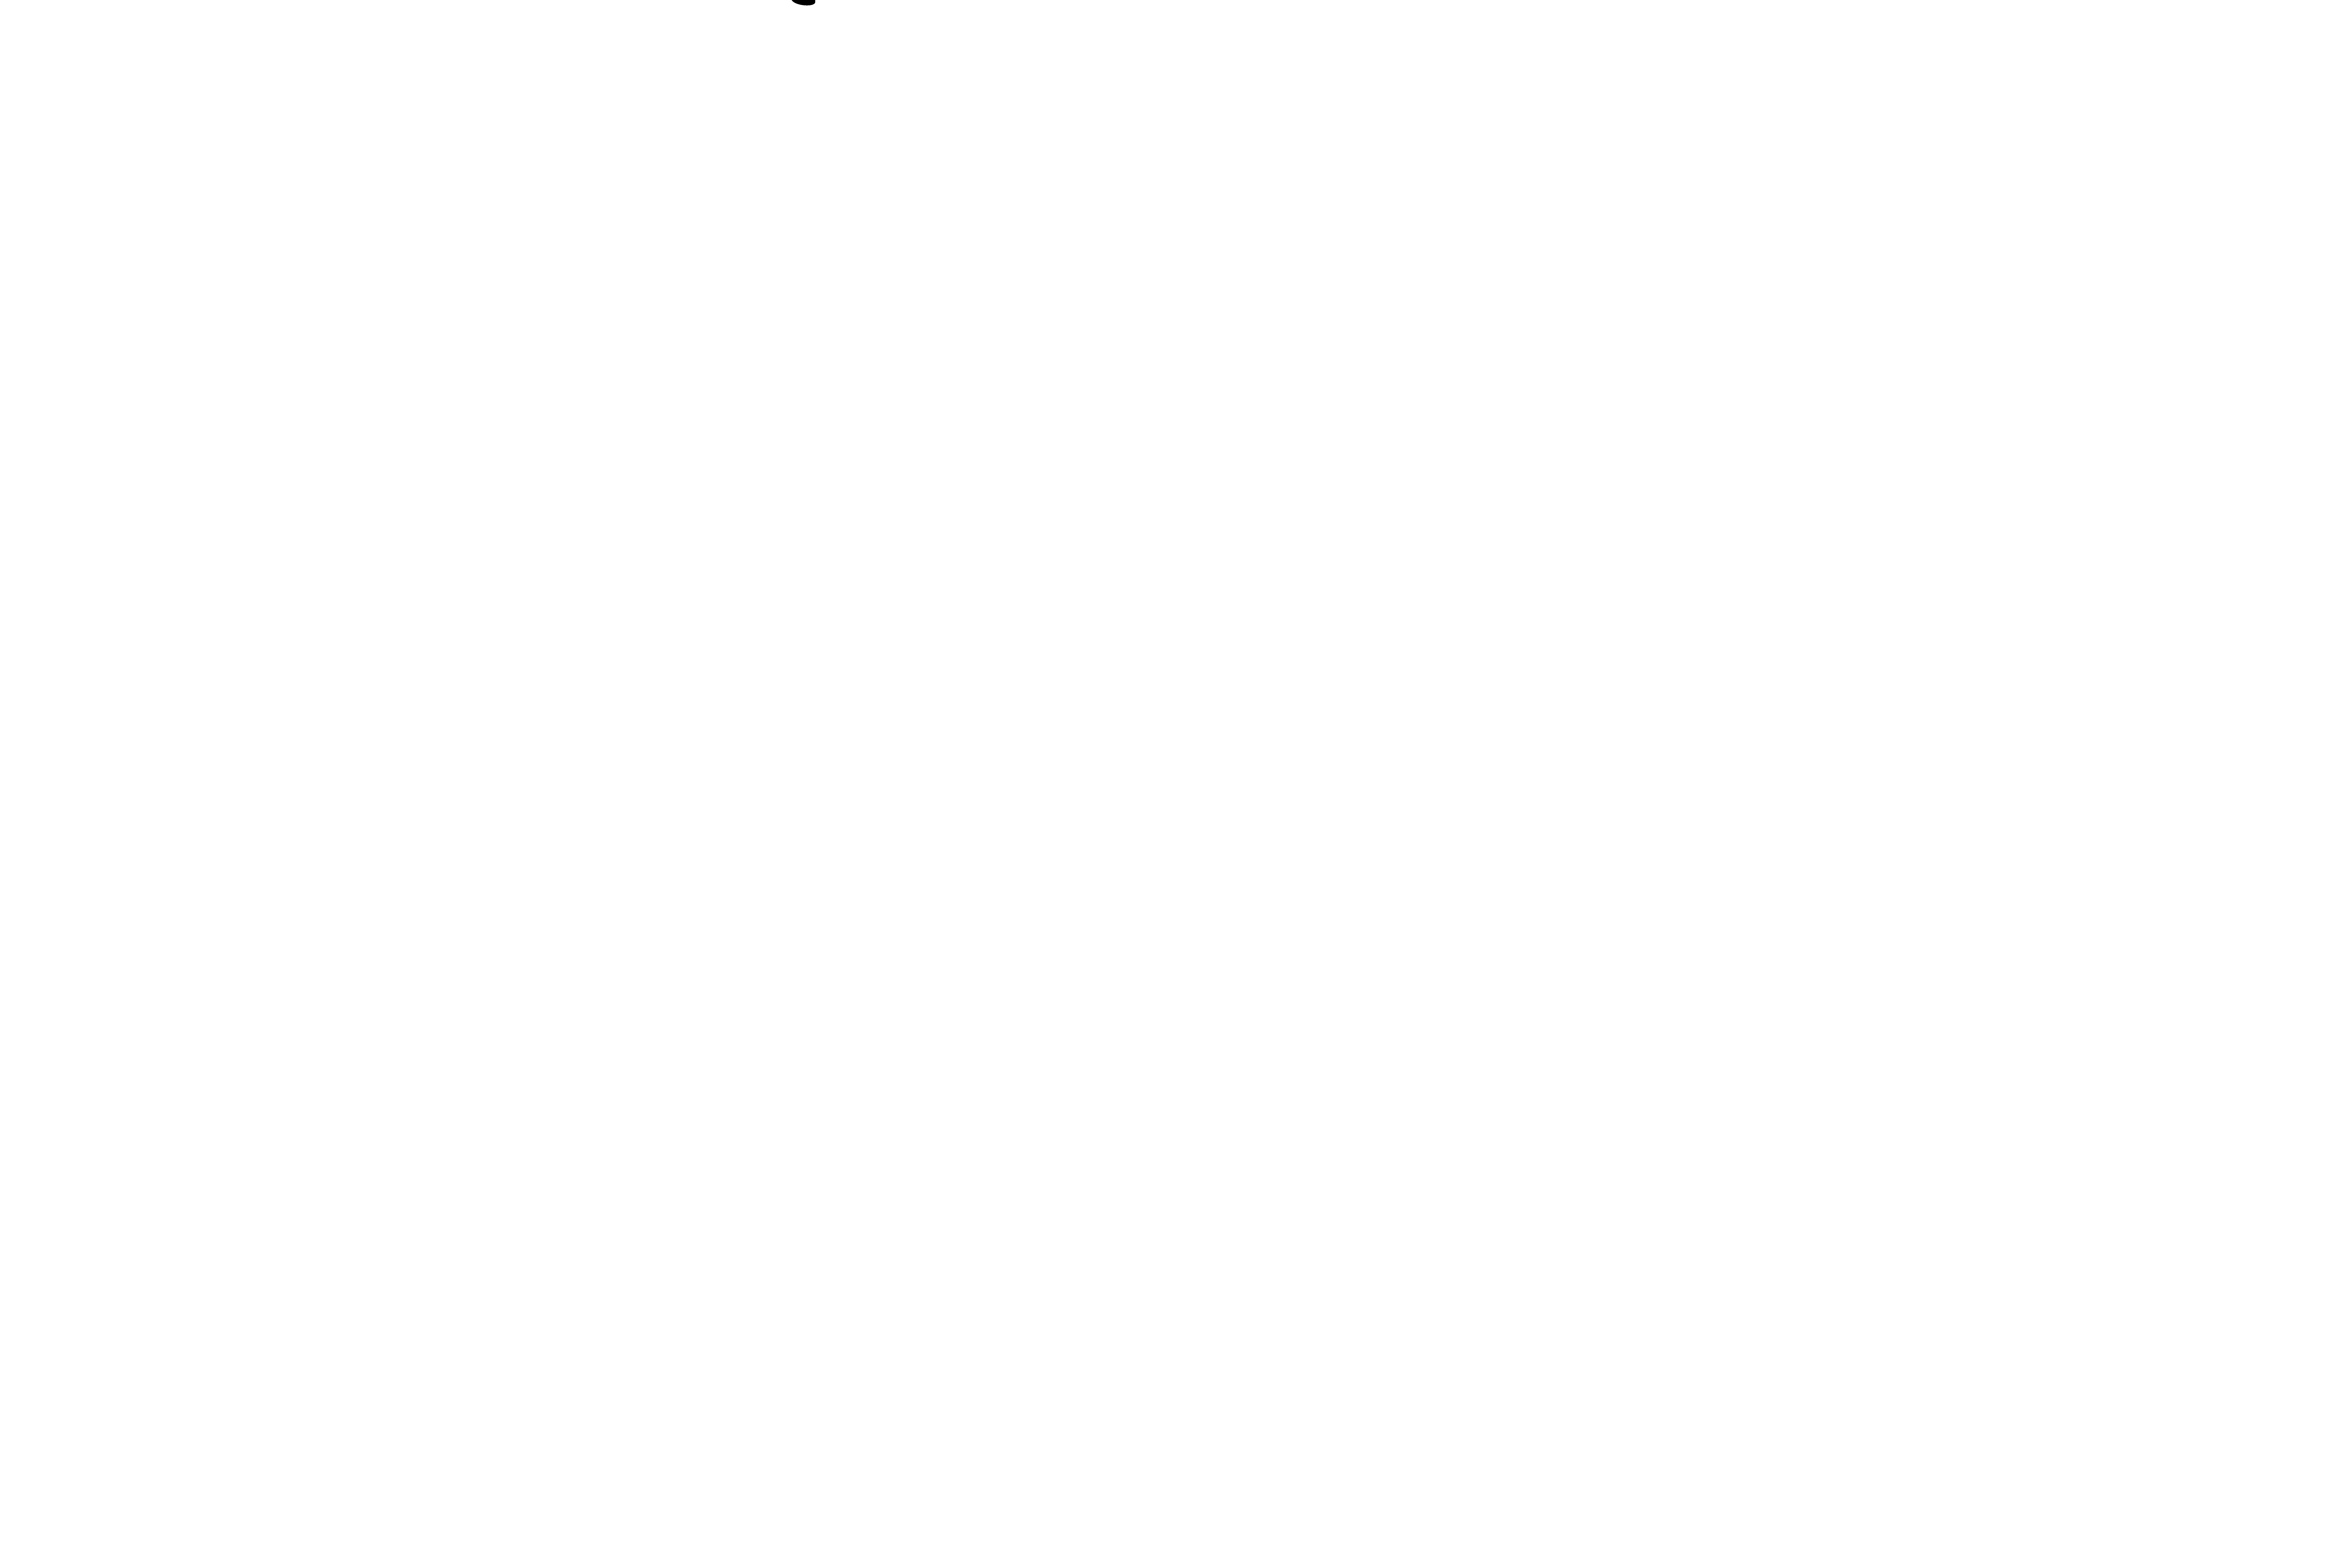 DL Action Sports Photography